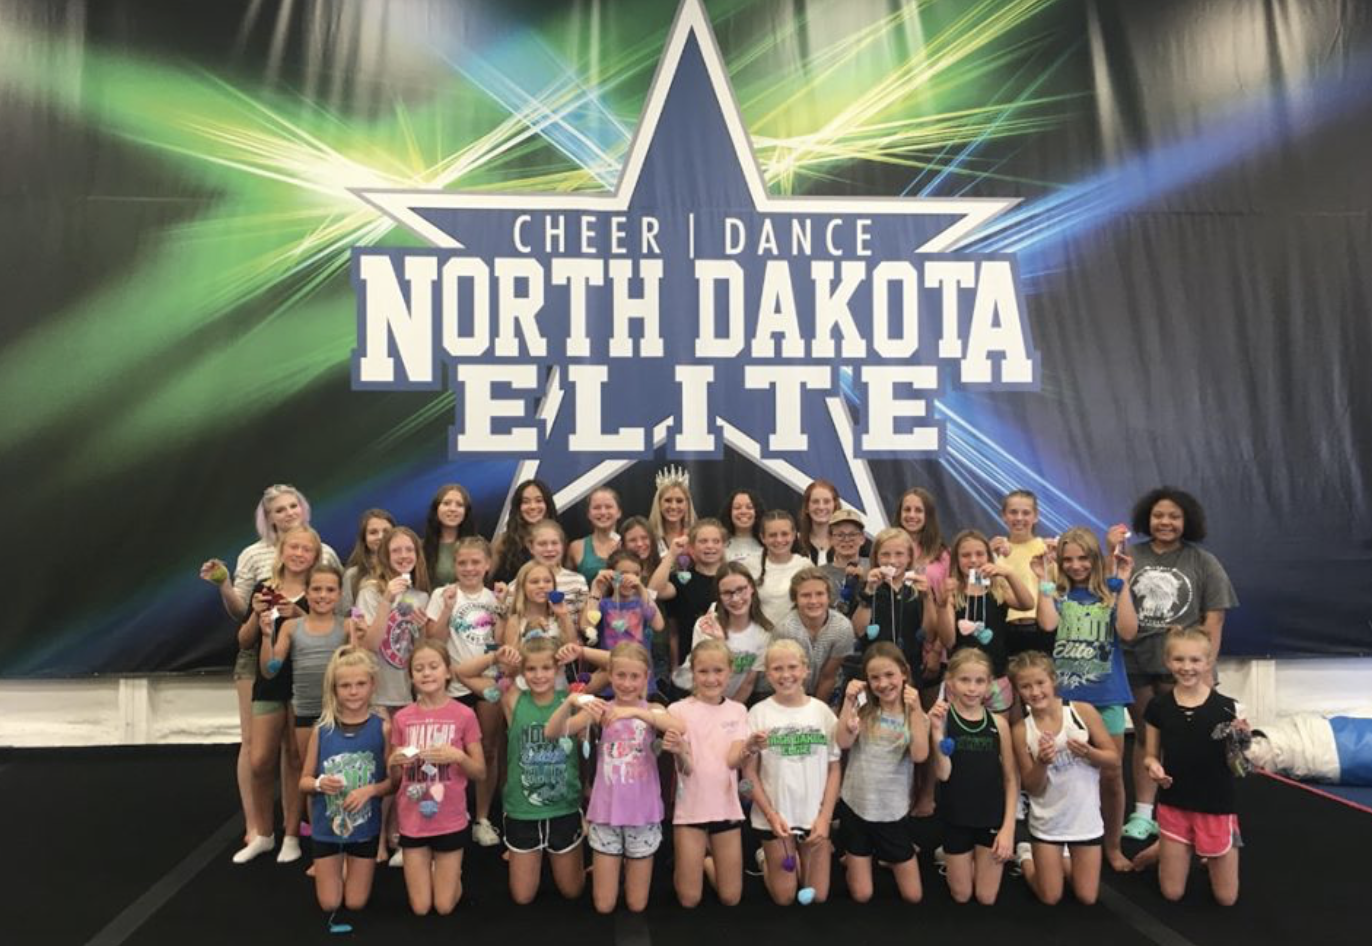 Hosting a heart making event with the North Dakota Elite Cheer Team.